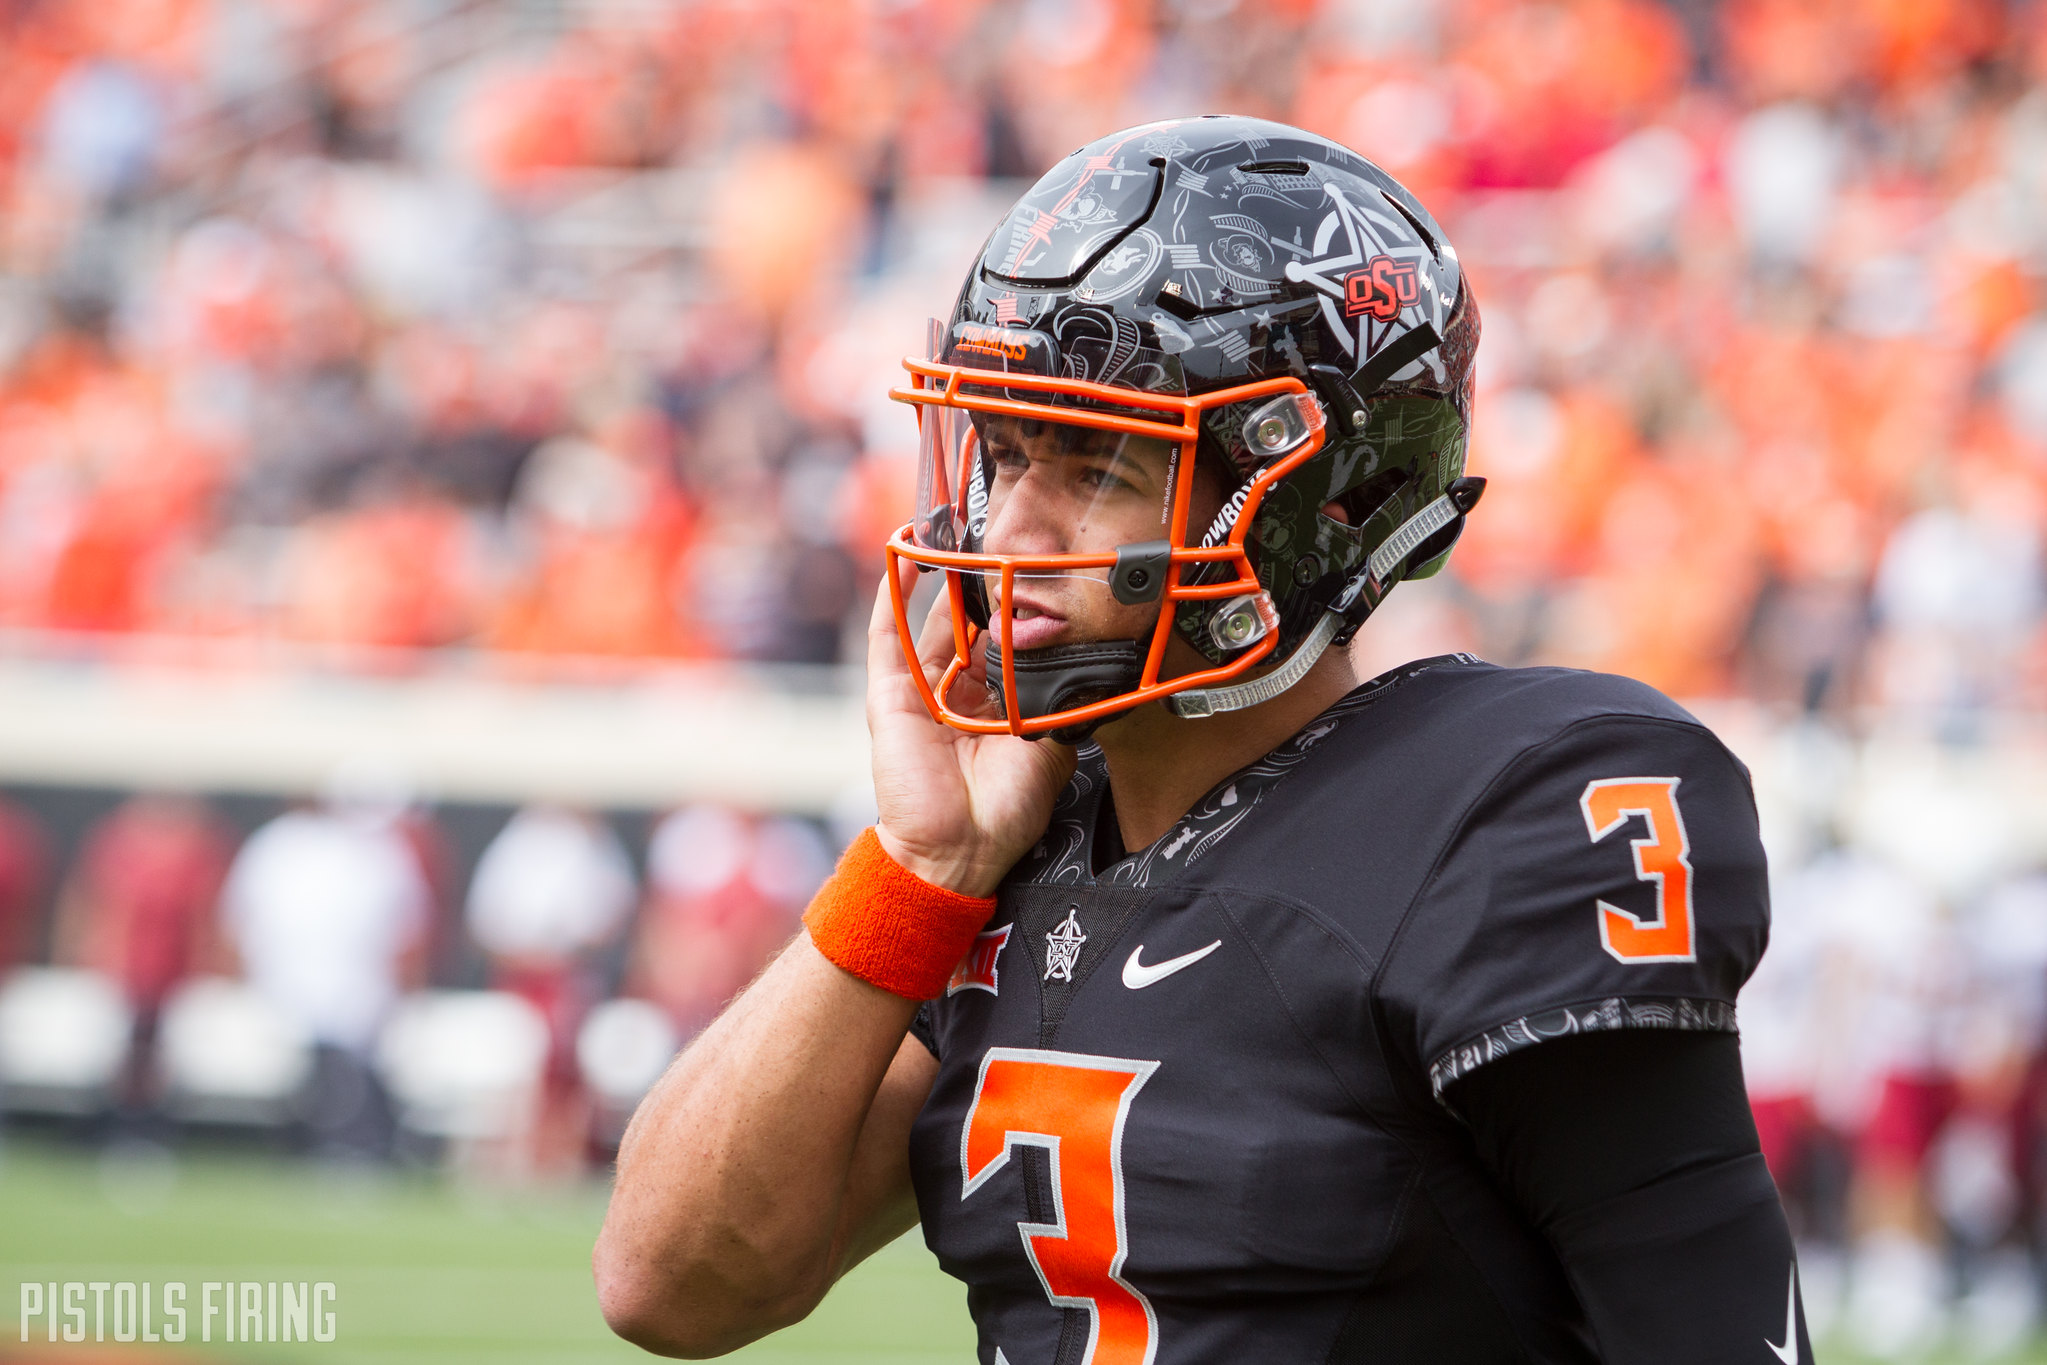 Oklahoma State 2019 Football Schedule | Pistols Firing